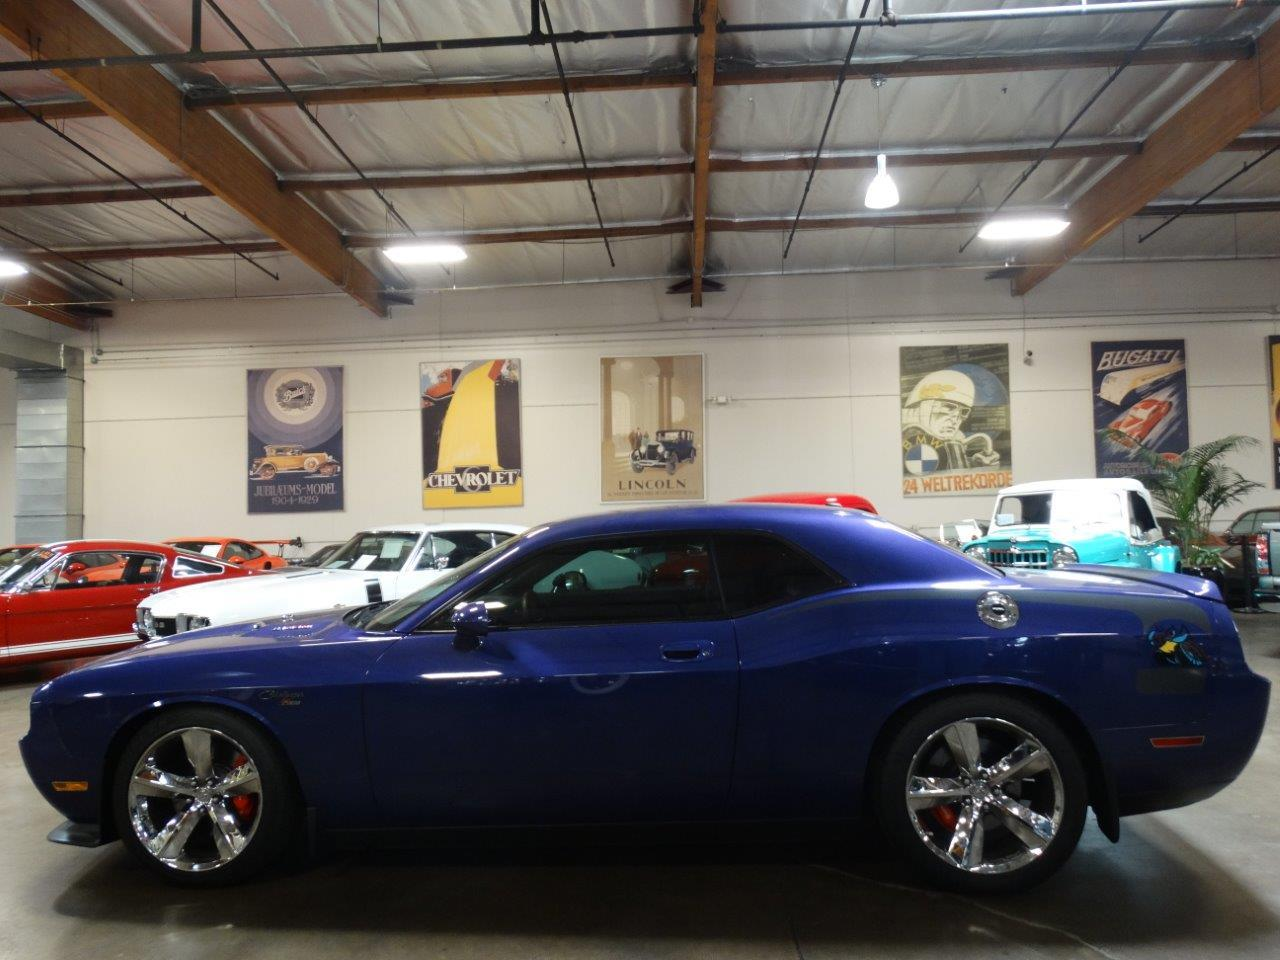 2010 Dodge Challenger for sale in Costa Mesa, CA – photo 6